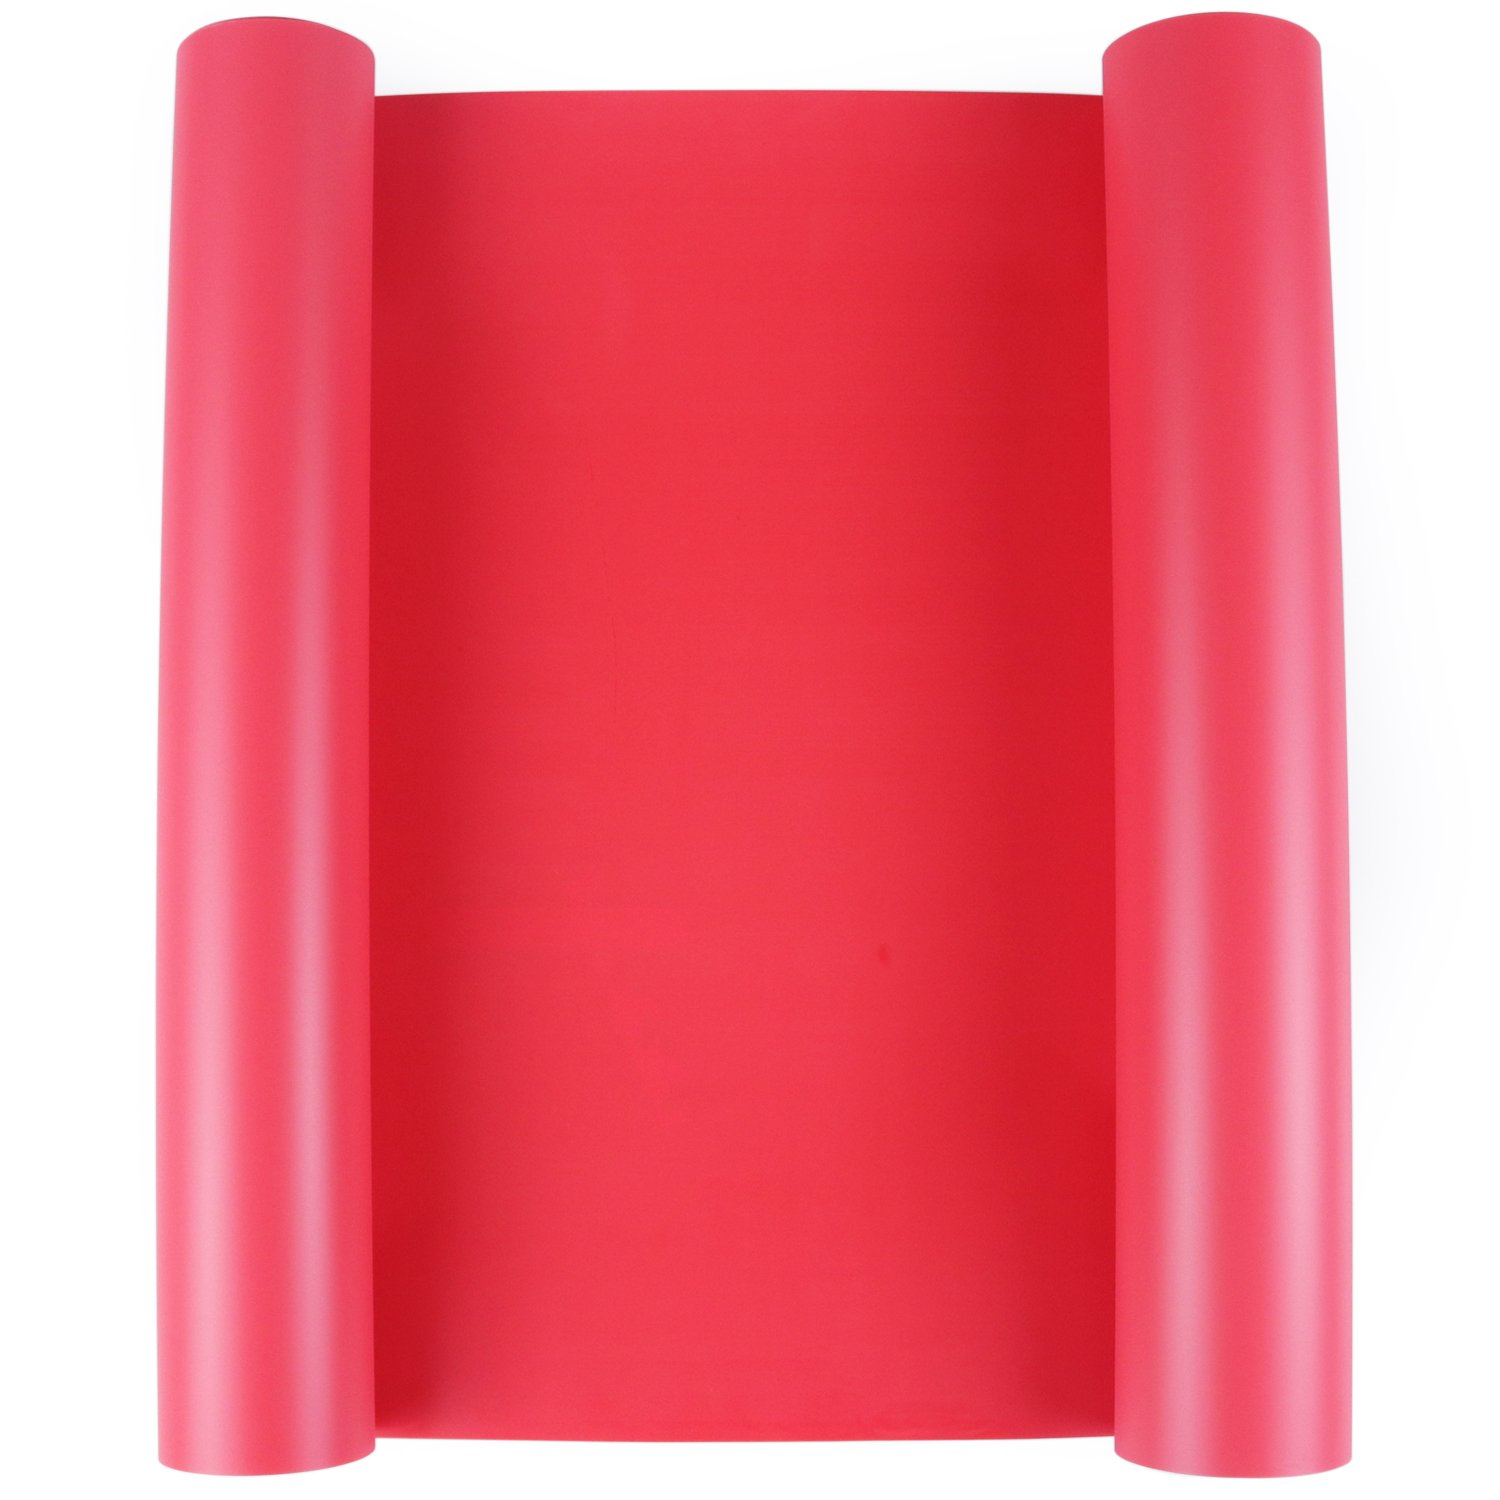 Heat Transfer Vinyl HTV for T-Shirts 12 Inches by 15 Feet Rolls Red